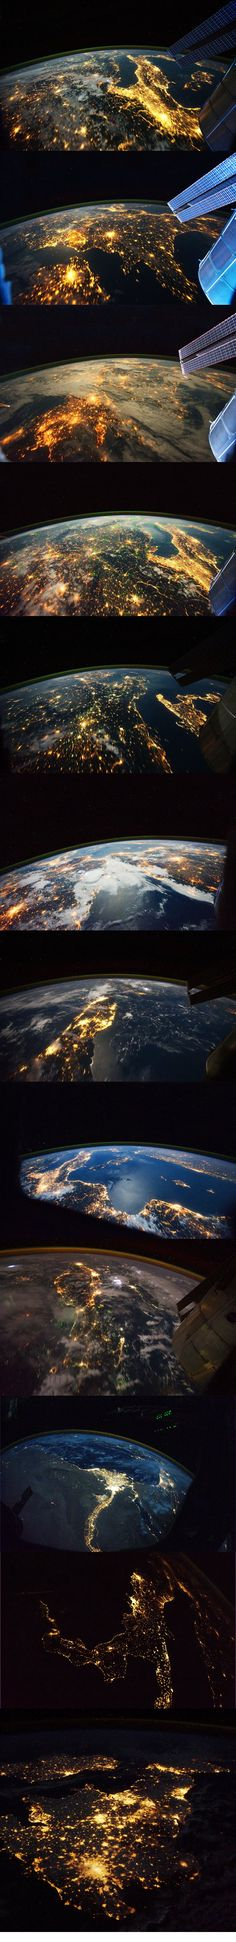 Earth at night from space…in love with these pictures. So breathtaking! Earth at night from space…in love with these pictures. So breathtaking! Cosmos, Earth At Night, Carl Sagan, Space And Astronomy, Earth From Space, To Infinity And Beyond, Space Travel, Space Exploration, Milky Way